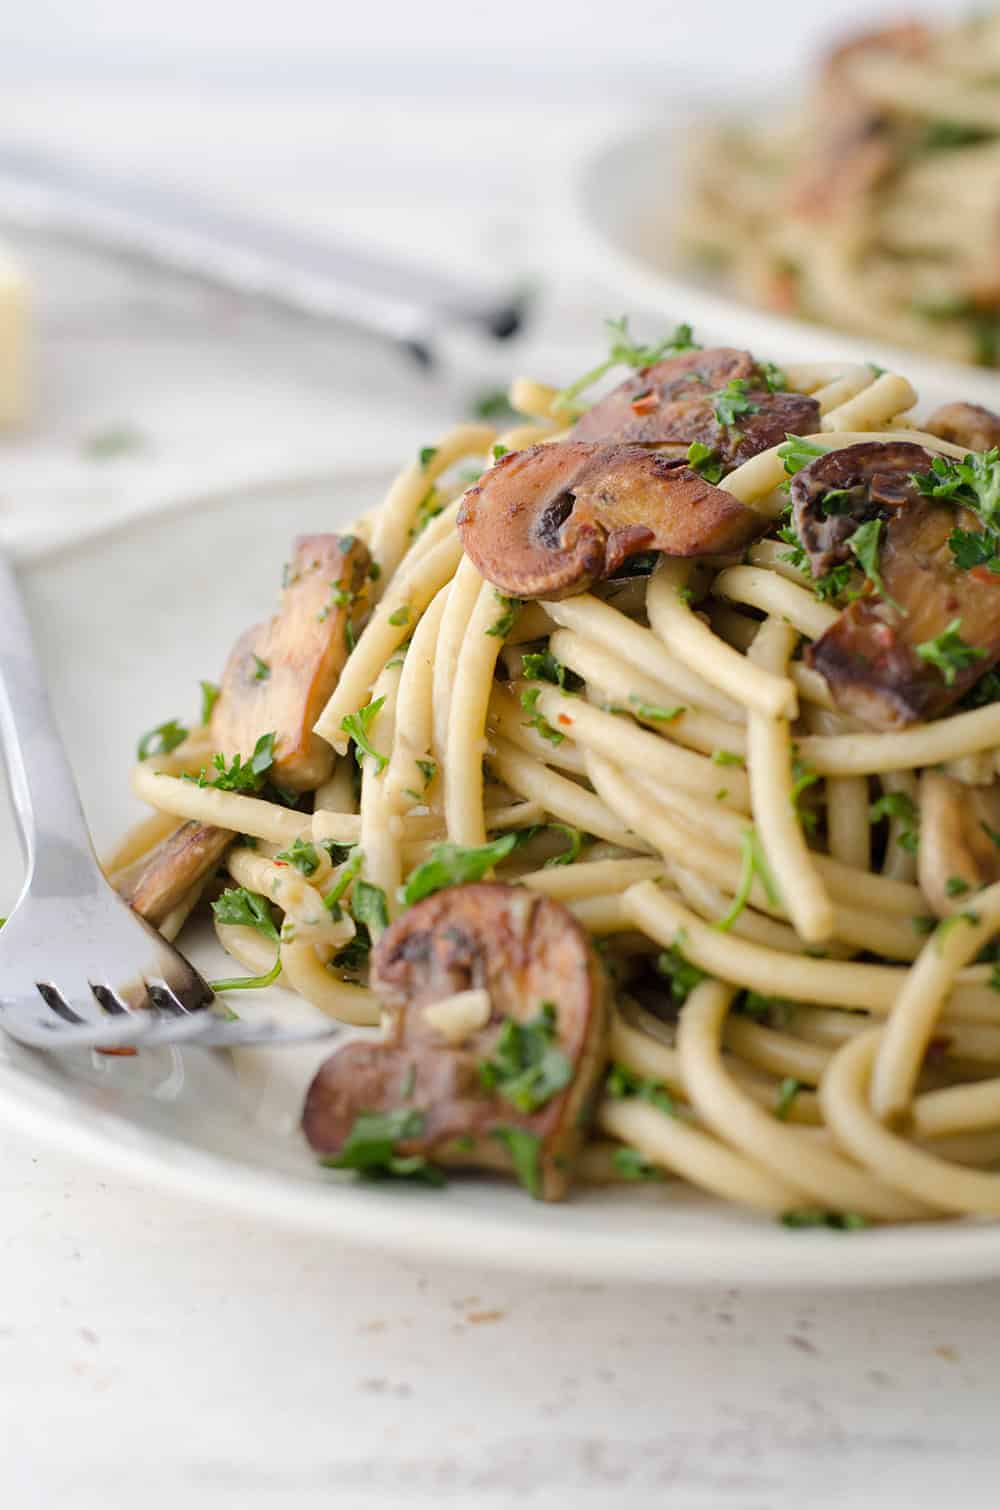 The BEST creamy mushroom pasta! Made with a secret ingredient, this pasta is packed with savory umami flavor and ready in just 20 minutes! Save this for weeknight dinners. | www.delishknowledge.com